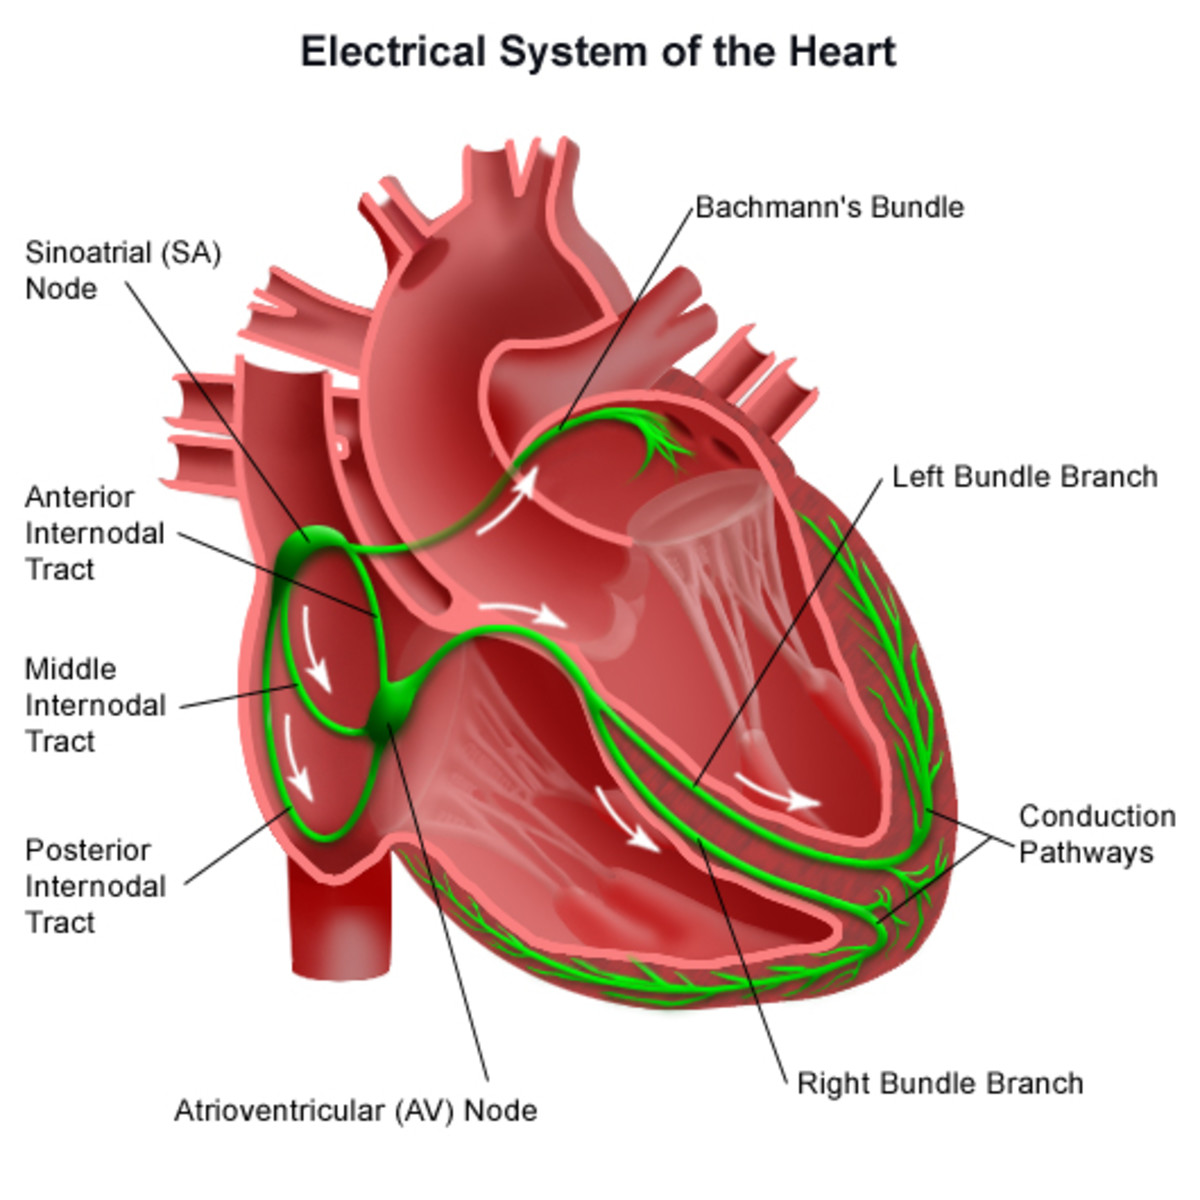 The Human Heart's Electrical Conduction System. Note the placement of the Sinatorial Node within the right atrium. And that of the Atrioventricular Node, loacated in the right ventricle.